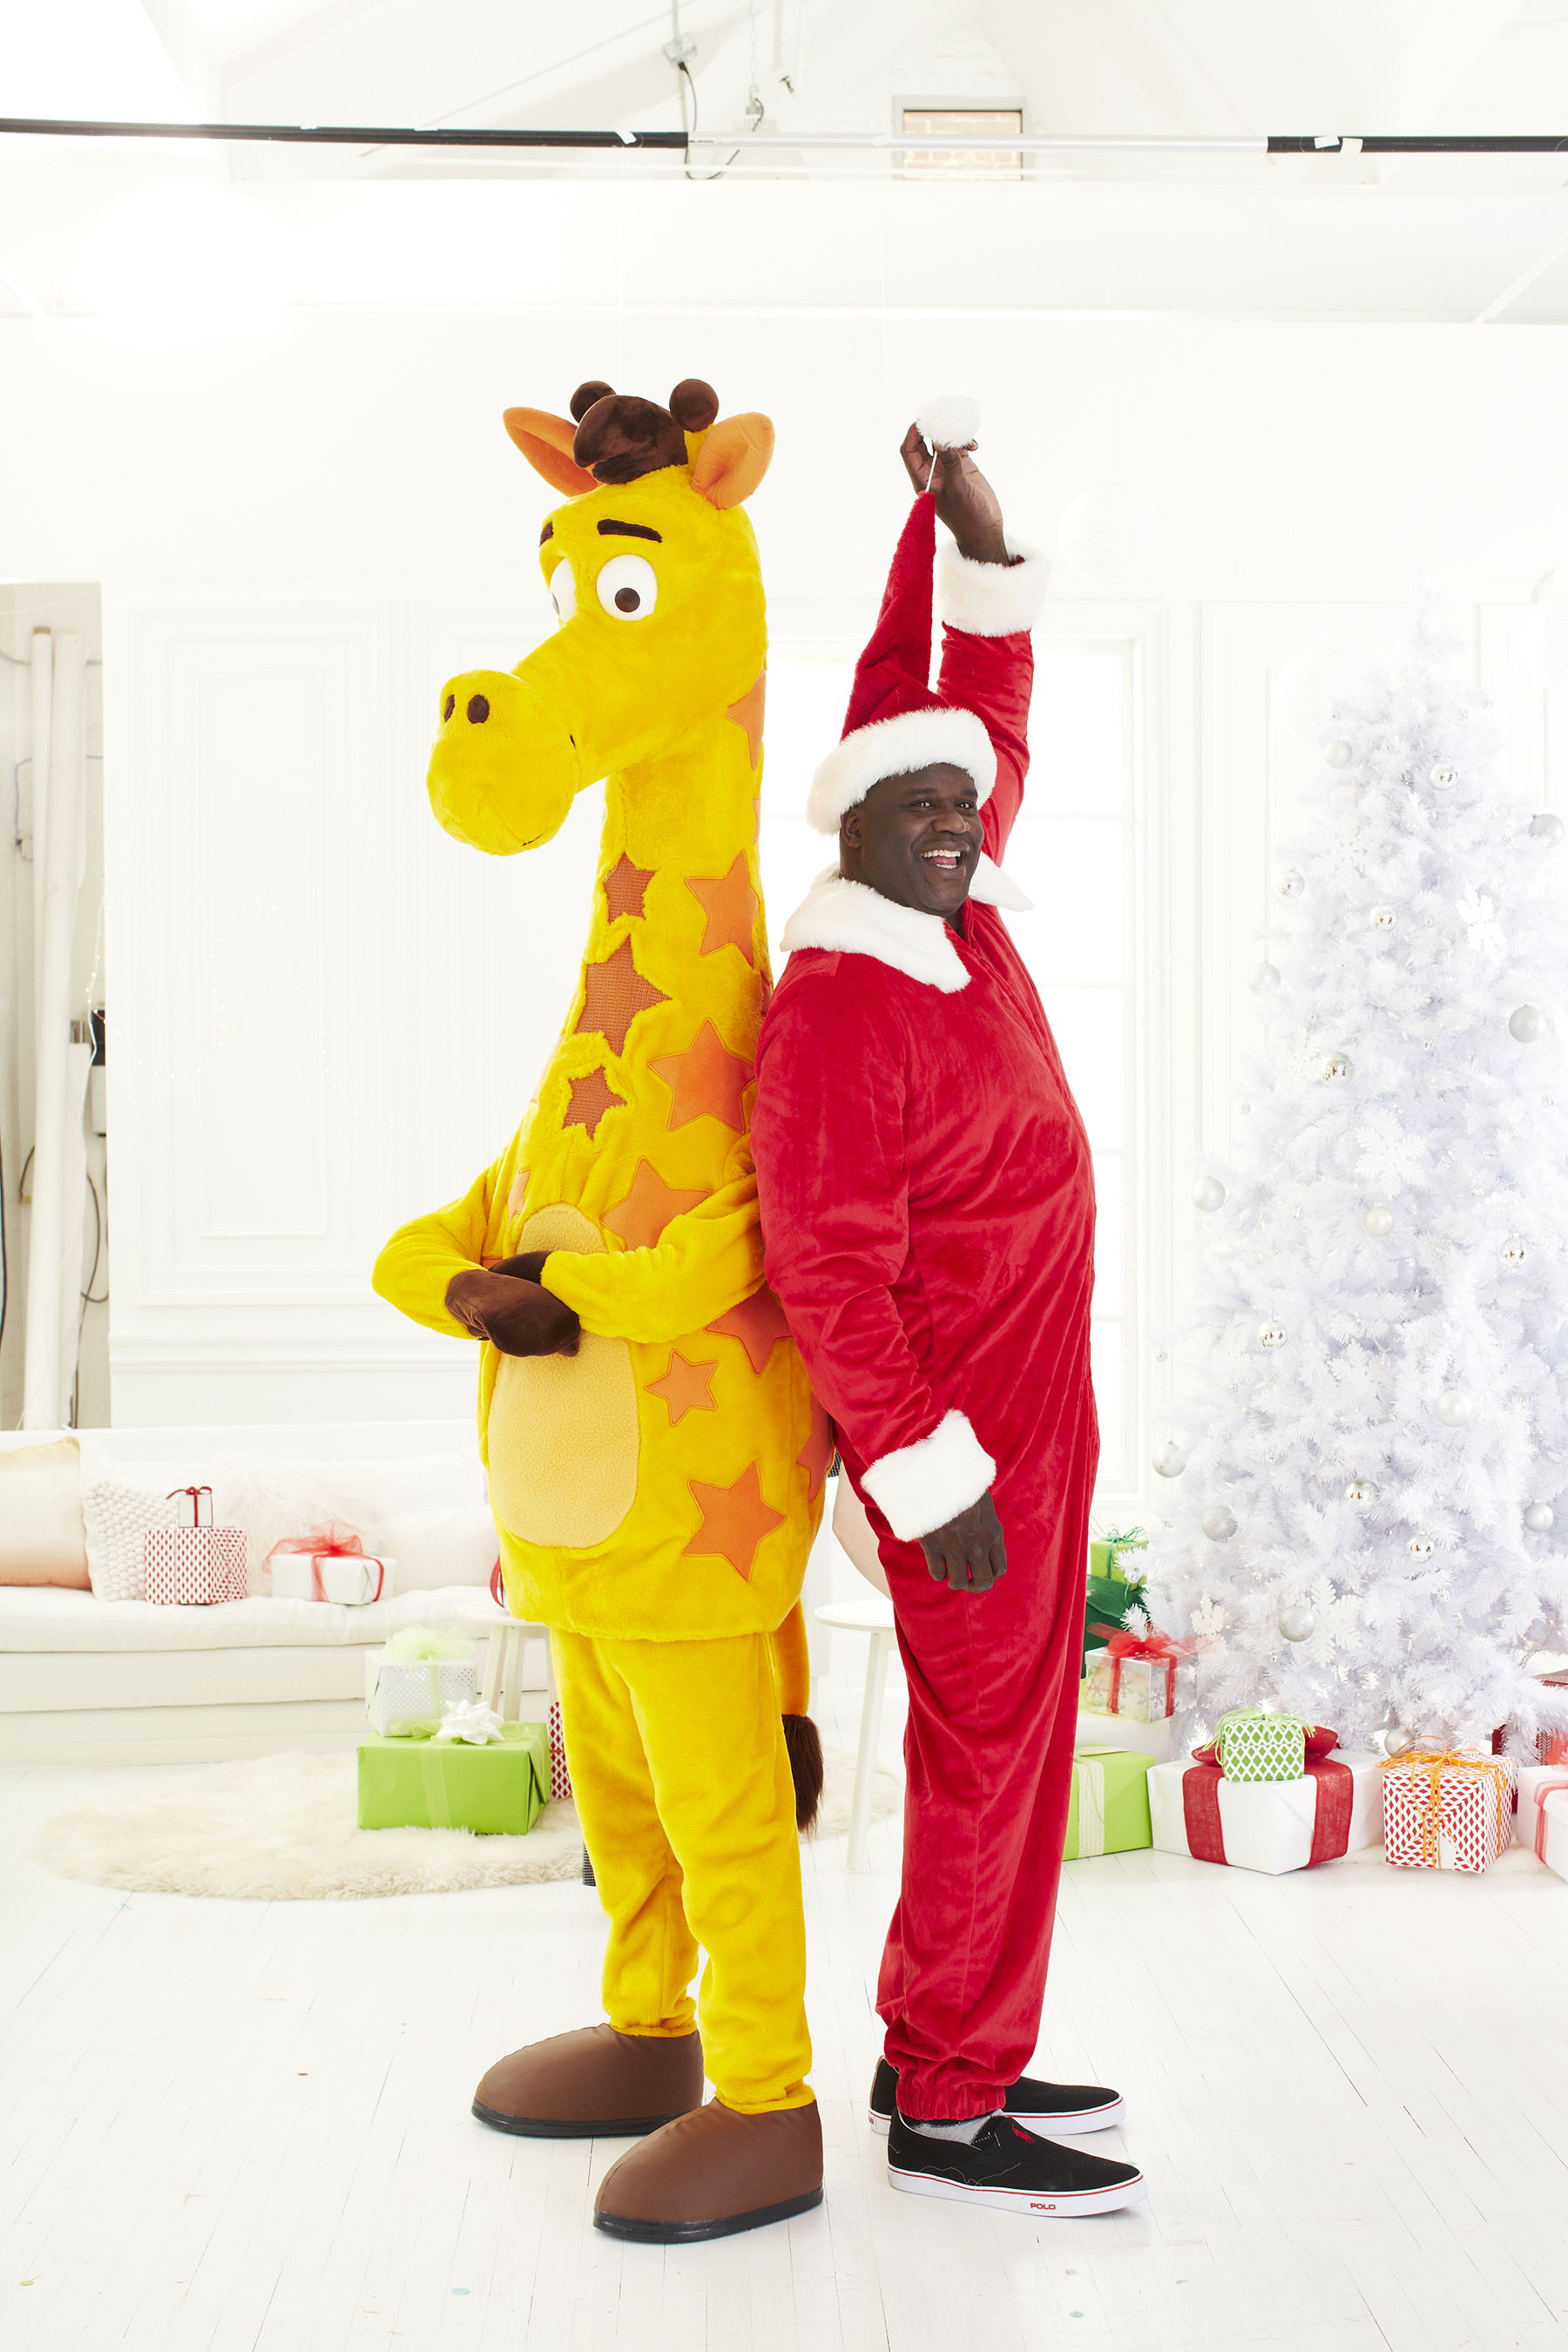 """To help Twitter followers give the gift of play to kids in need on #GivingTuesday, the Toys""""R""""Us Children's Fund will donate 1 toy to Toys for Tots, up to $125,000 worth, for every retweet of Shaquille's #PlayItForward tweet on December 1"""